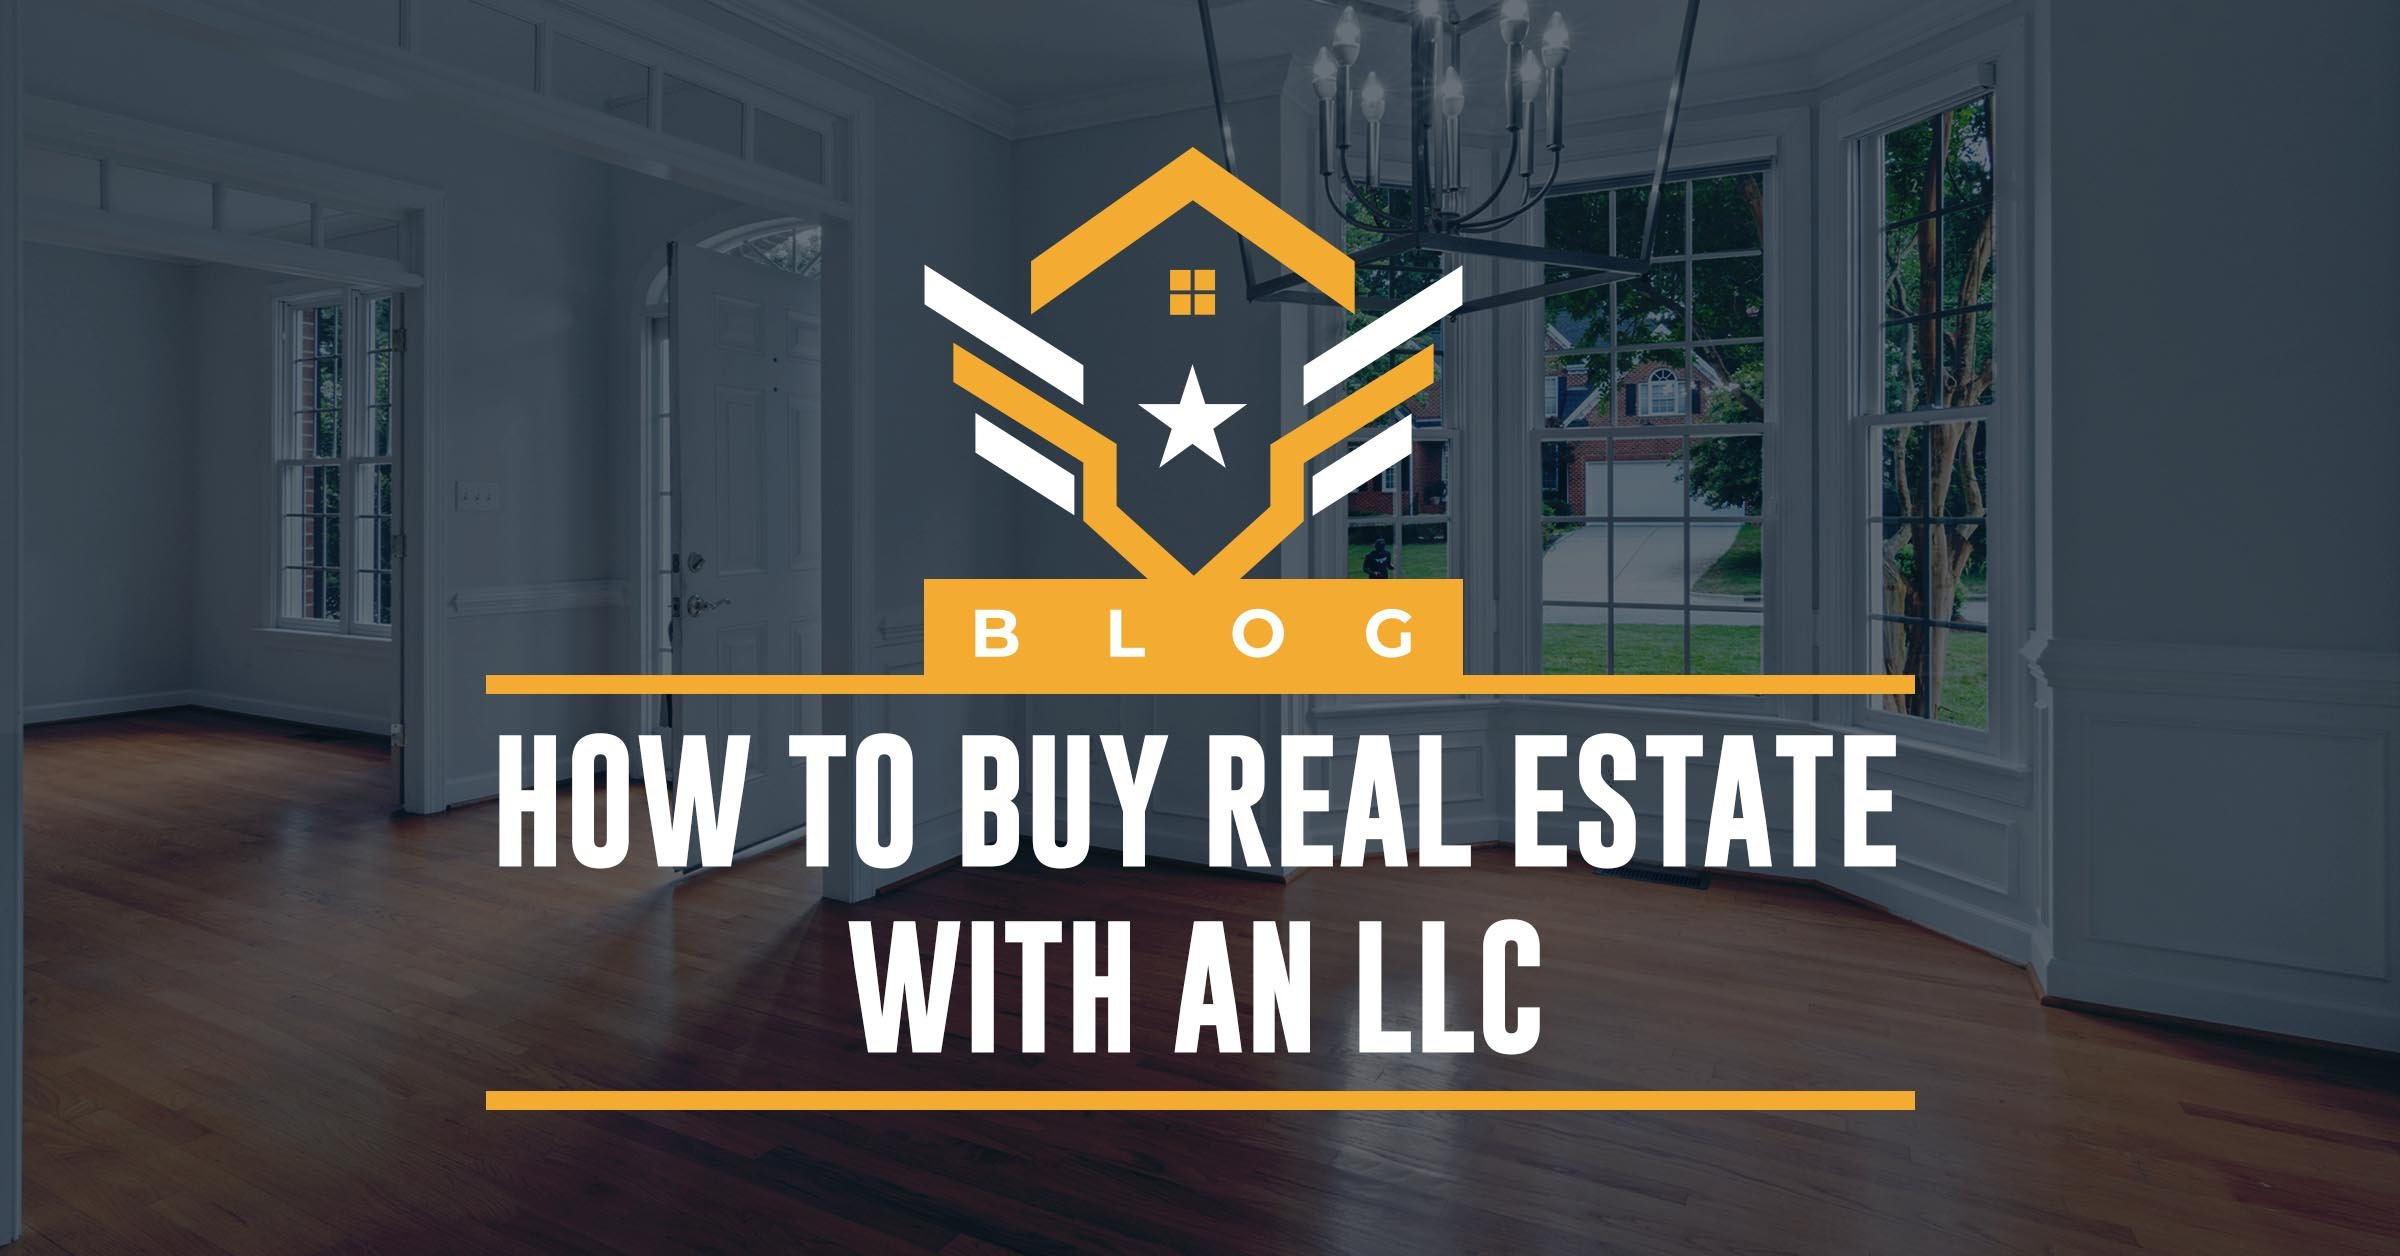 Real Estate With an LLC